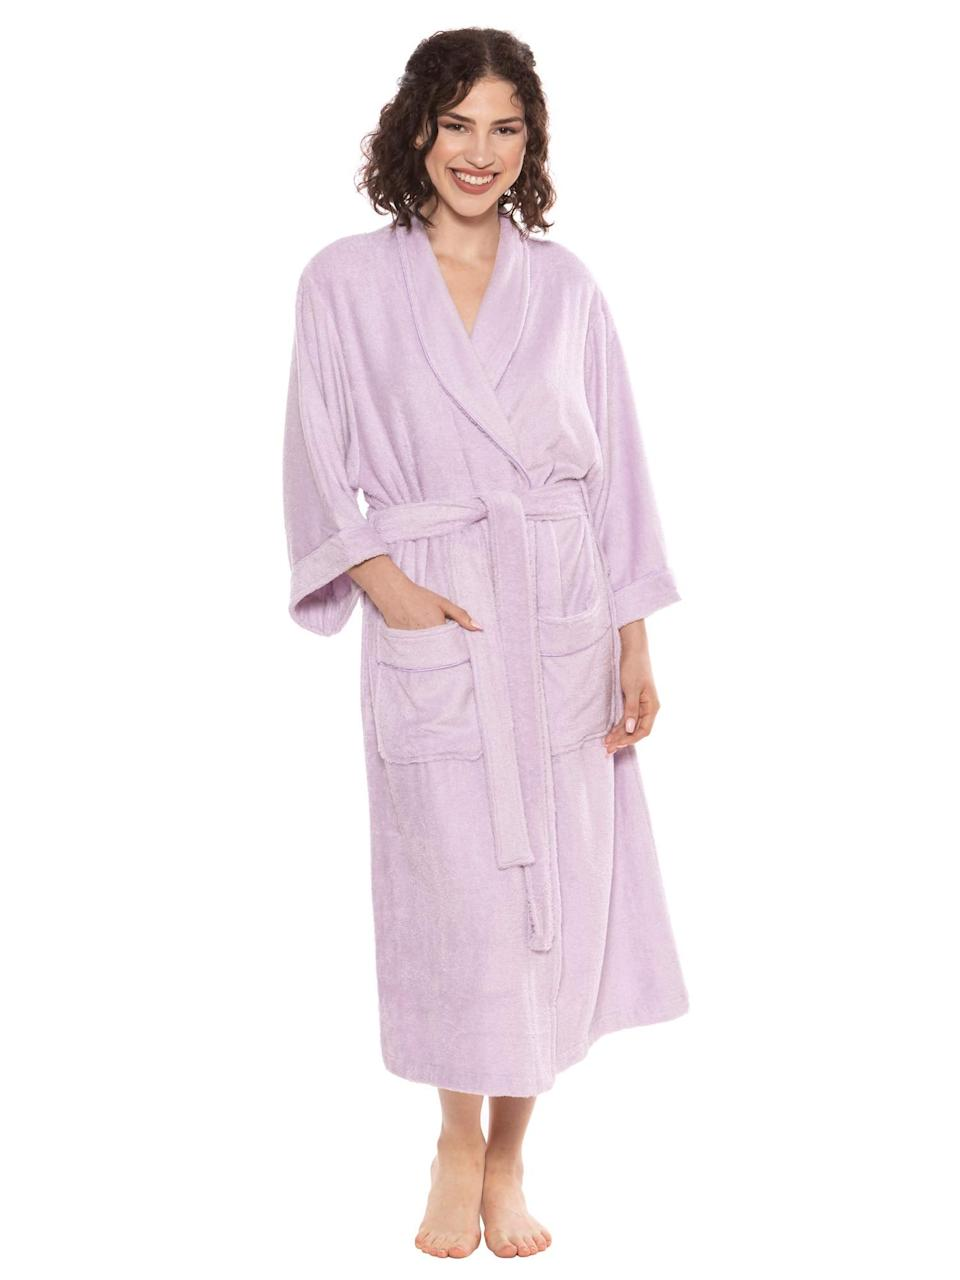 """<h3><a href=""""https://amzn.to/2Q1oqZR"""" rel=""""nofollow noopener"""" target=""""_blank"""" data-ylk=""""slk:Luxury Bamboo-Cotton Bathrobe"""" class=""""link rapid-noclick-resp"""">Luxury Bamboo-Cotton Bathrobe</a></h3><br>Yes, you <em>can</em> get your hands on a luxe-looking and feeling bamboo-cotton blend robe for under $50 — and this top-rated Amazon-style in a calming lavender hue proves it. <br><br>One cozied up customer praised: """"This is a beautiful, spa-quality terry robe. I have been searching for a while for a large comfortable terry robe to throw on right after a shower-no need for a towel. But they are VERY pricey. I was browsing one day and came across this robe. At the price I thought it couldn't be that good, but what the heck, so I gave it a try. This has to be one of the nicest terry robes I have ever owned and it cost less than a quarter of what I have spent. It is soft and absorbent. It is warm and snuggly and heavyweight. This is an excellent buy."""" <br><br><br><br><strong>TexereSilk</strong> Luxury Bamboo Viscose Robe, $, available at <a href=""""https://amzn.to/2Q1oqZR"""" rel=""""nofollow noopener"""" target=""""_blank"""" data-ylk=""""slk:Amazon"""" class=""""link rapid-noclick-resp"""">Amazon</a>"""